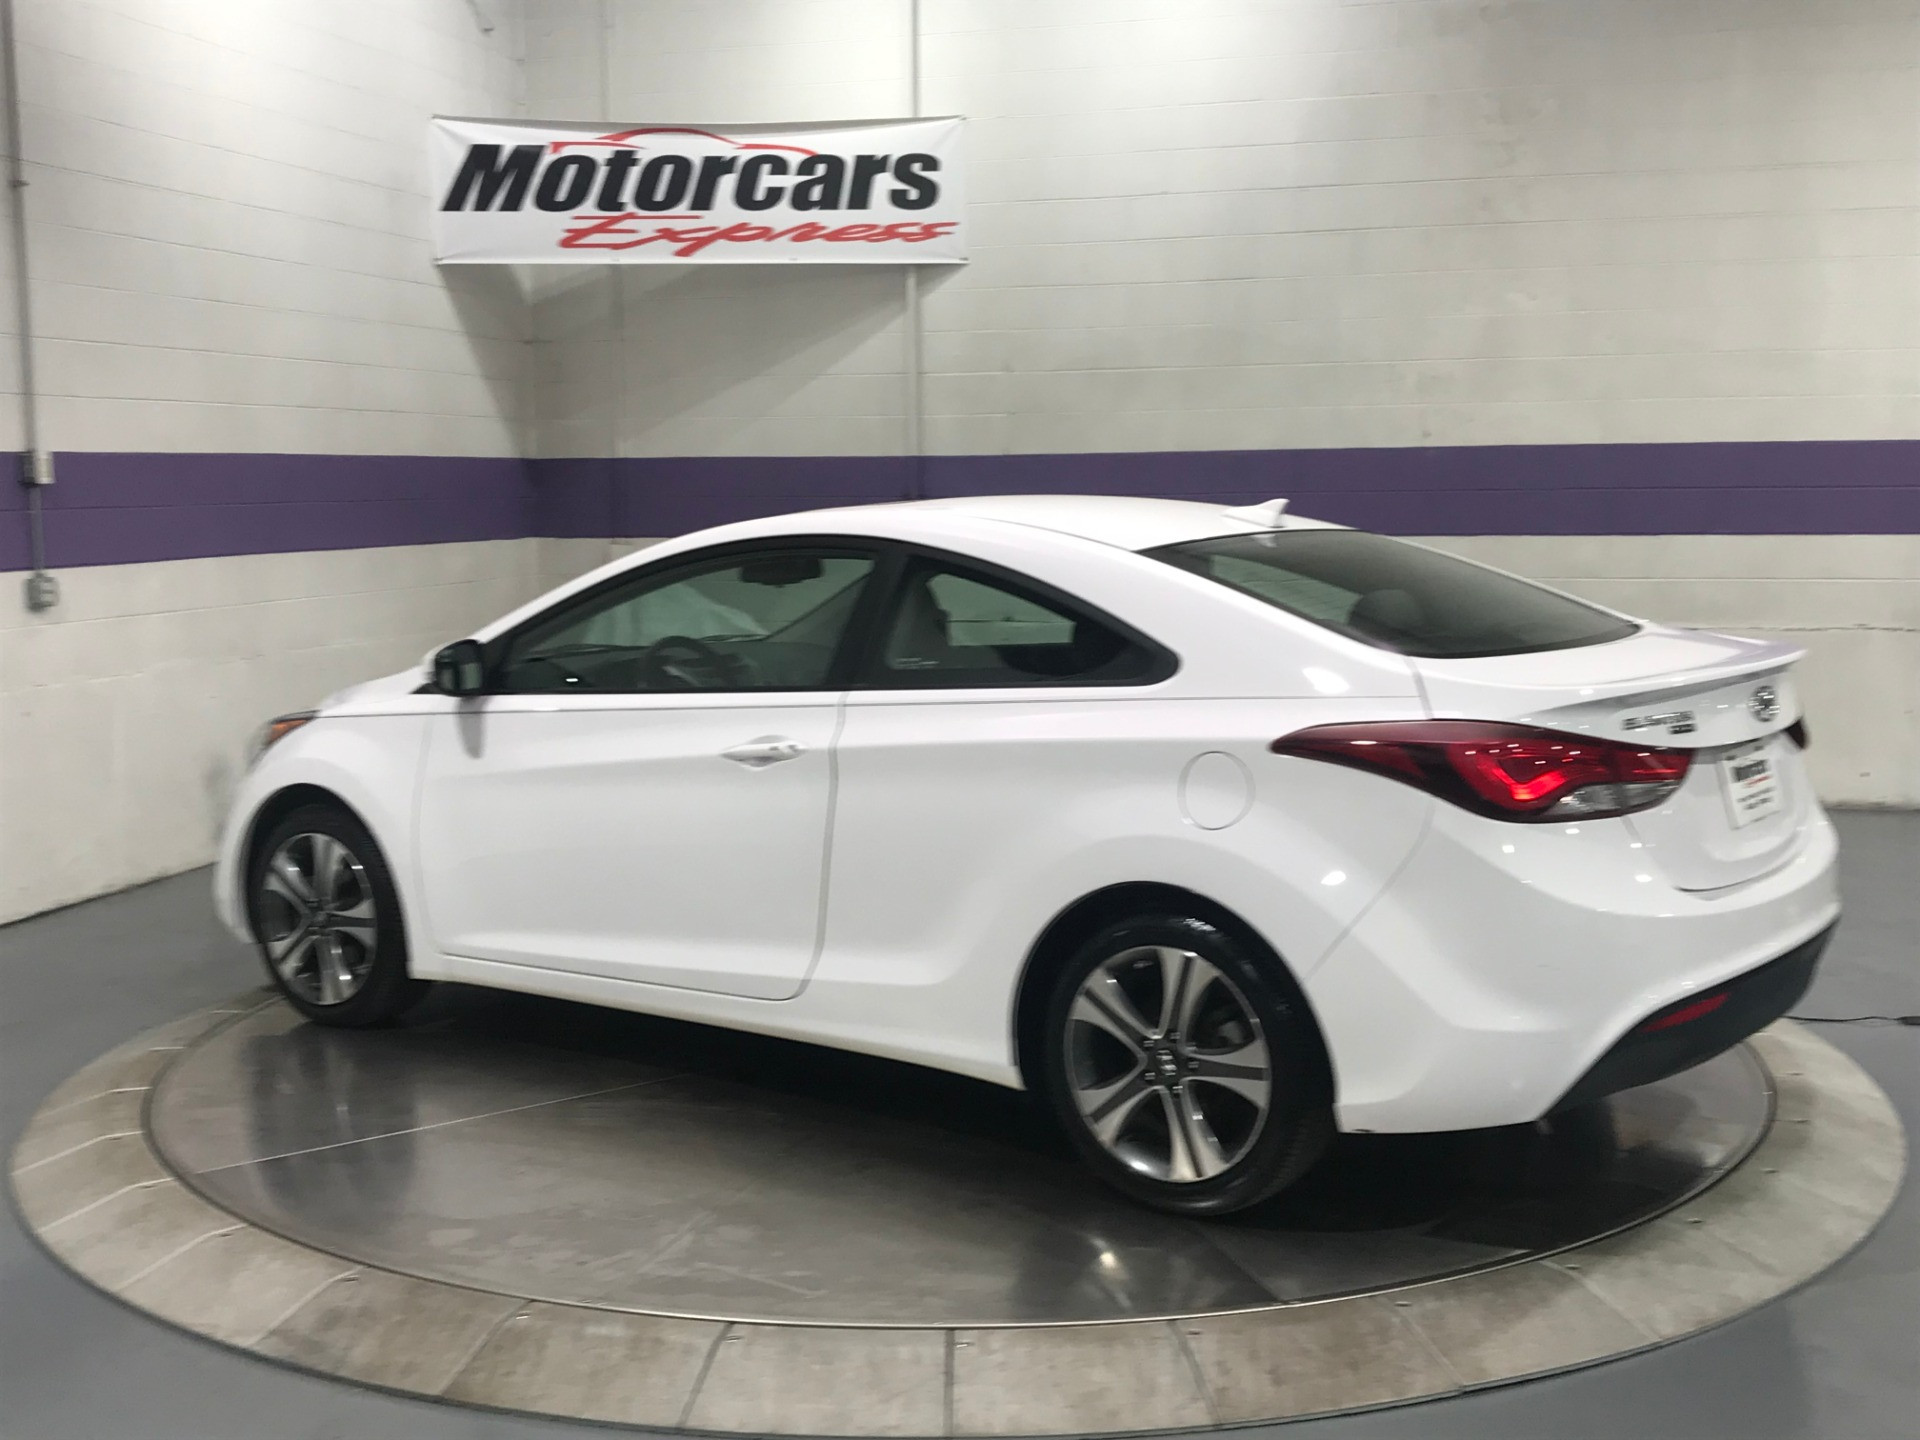 Hyundai Elantra Coupe >> 2014 Hyundai Elantra Coupe Stock 24943 For Sale Near Alsip